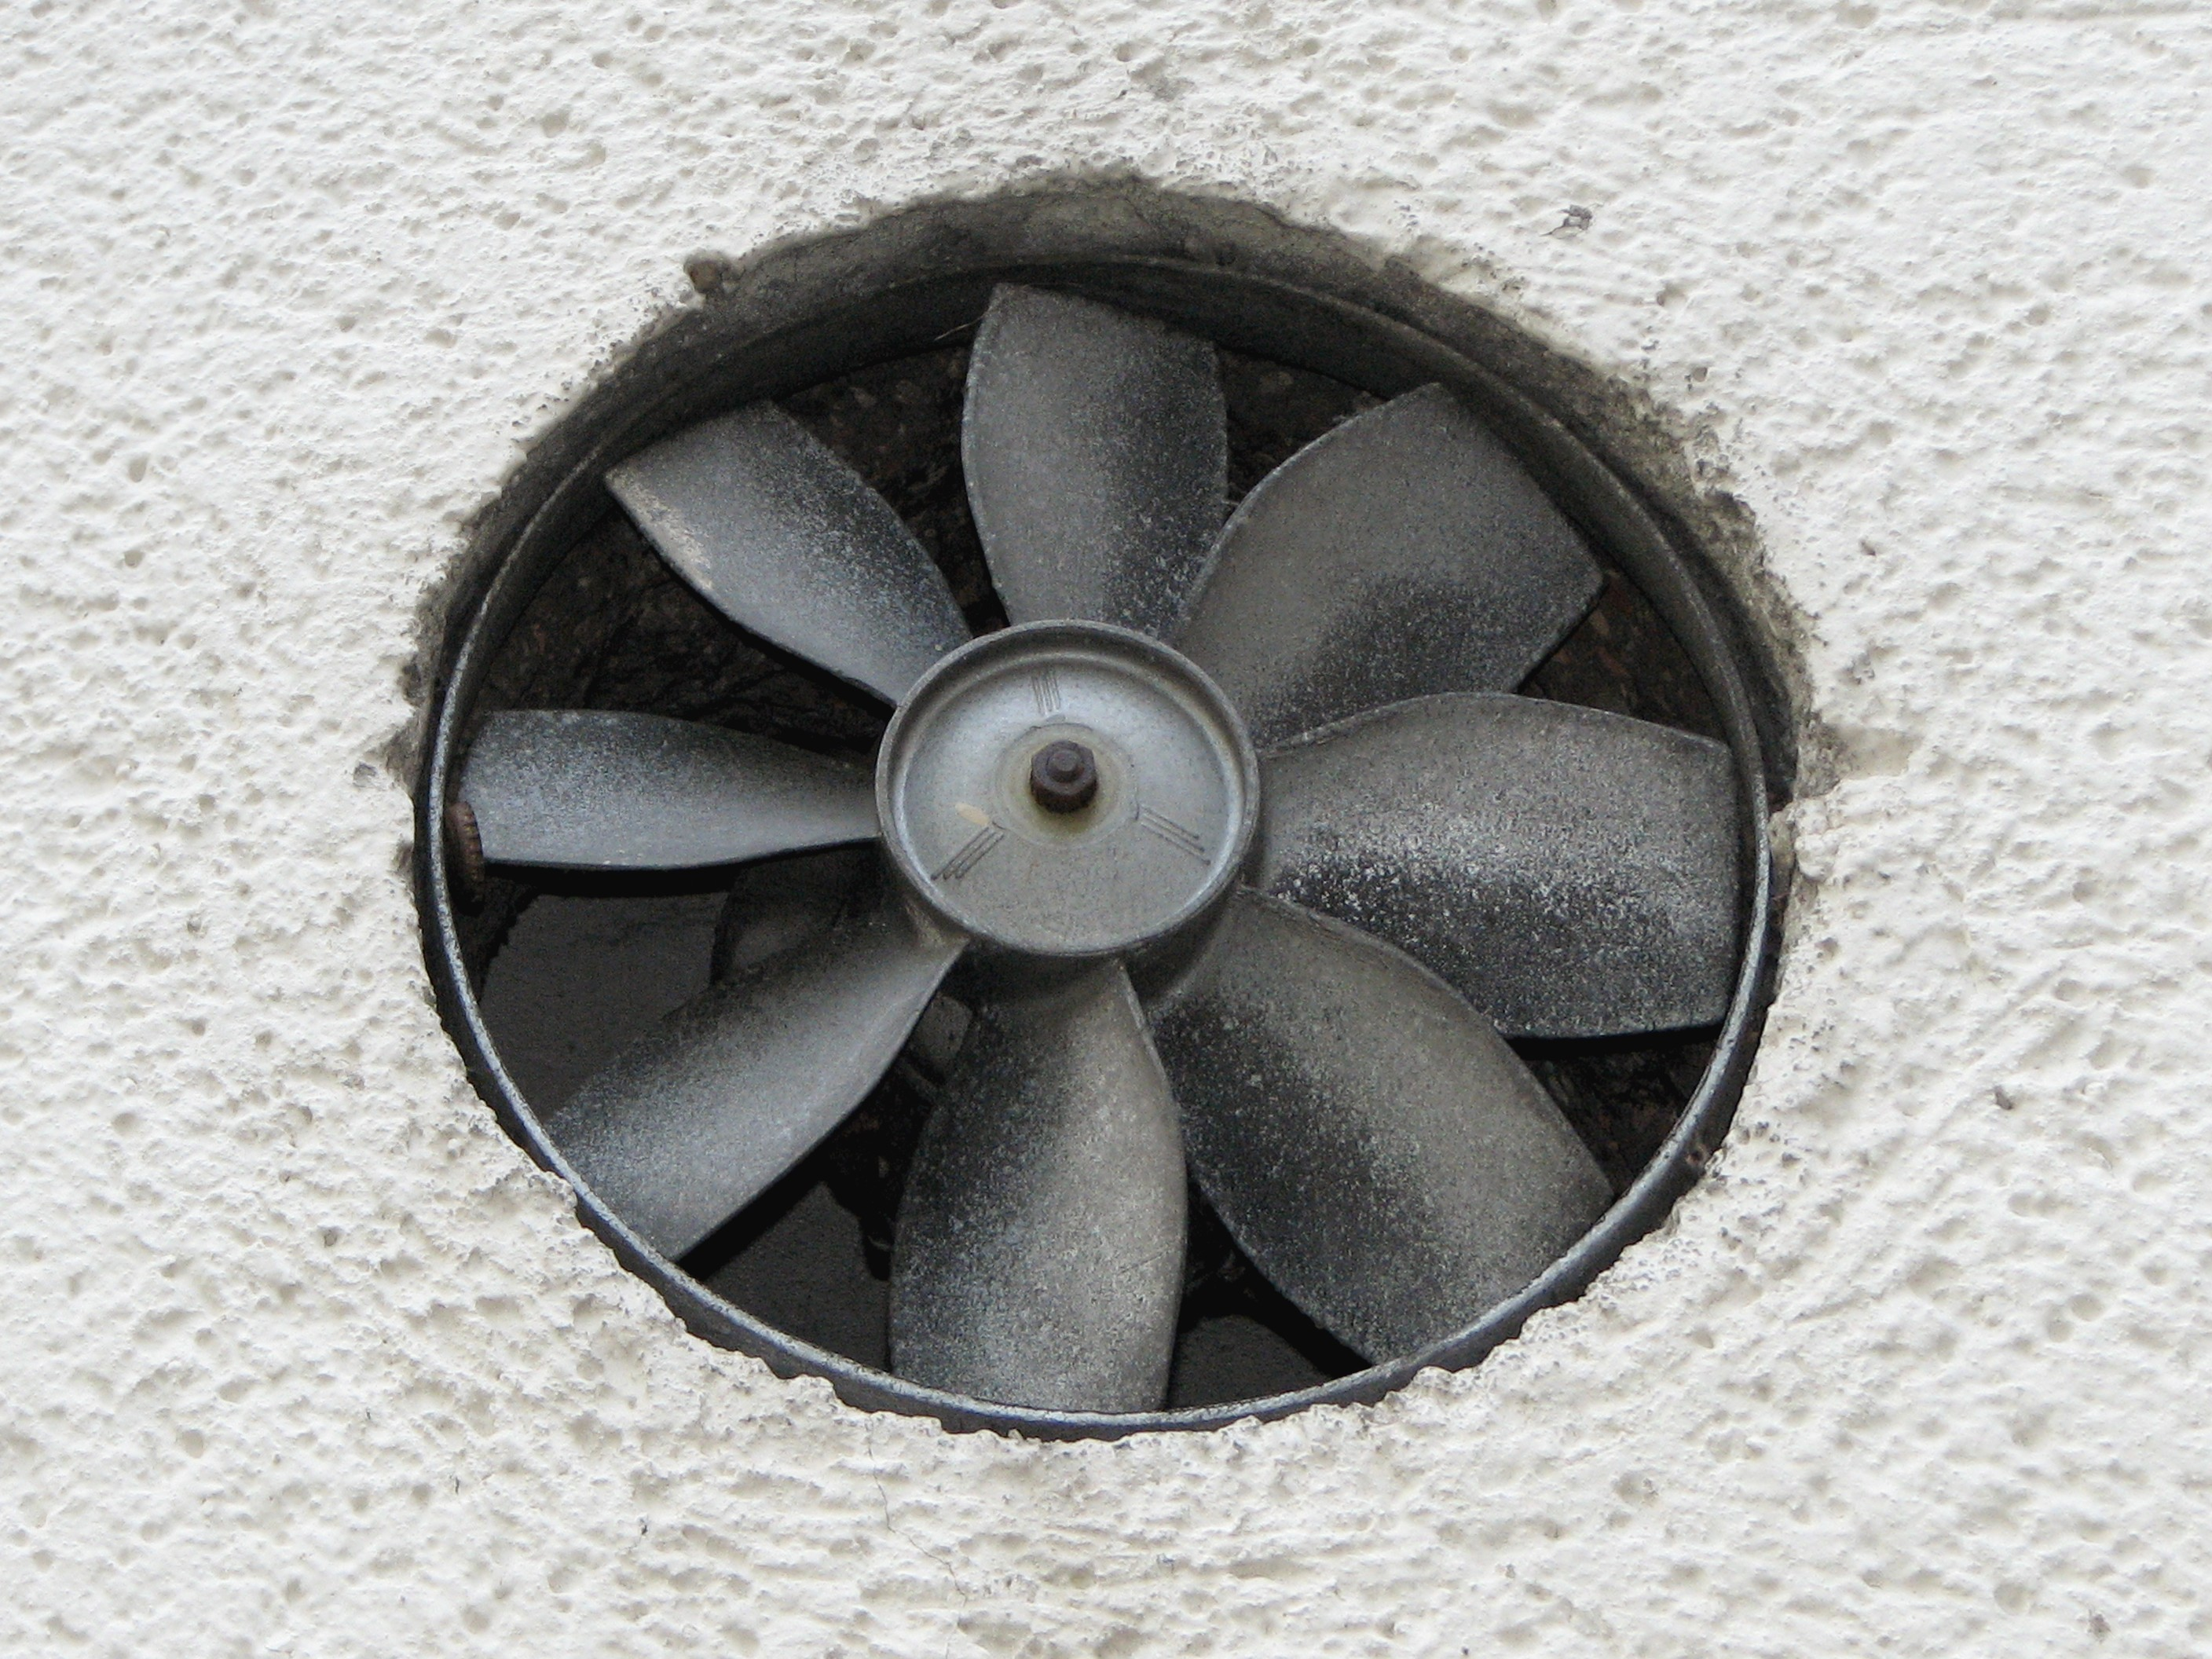 Cleaning The Exhaust Fan Simple Steps Ideas By Mr Right - Cleaning bathroom vent fan